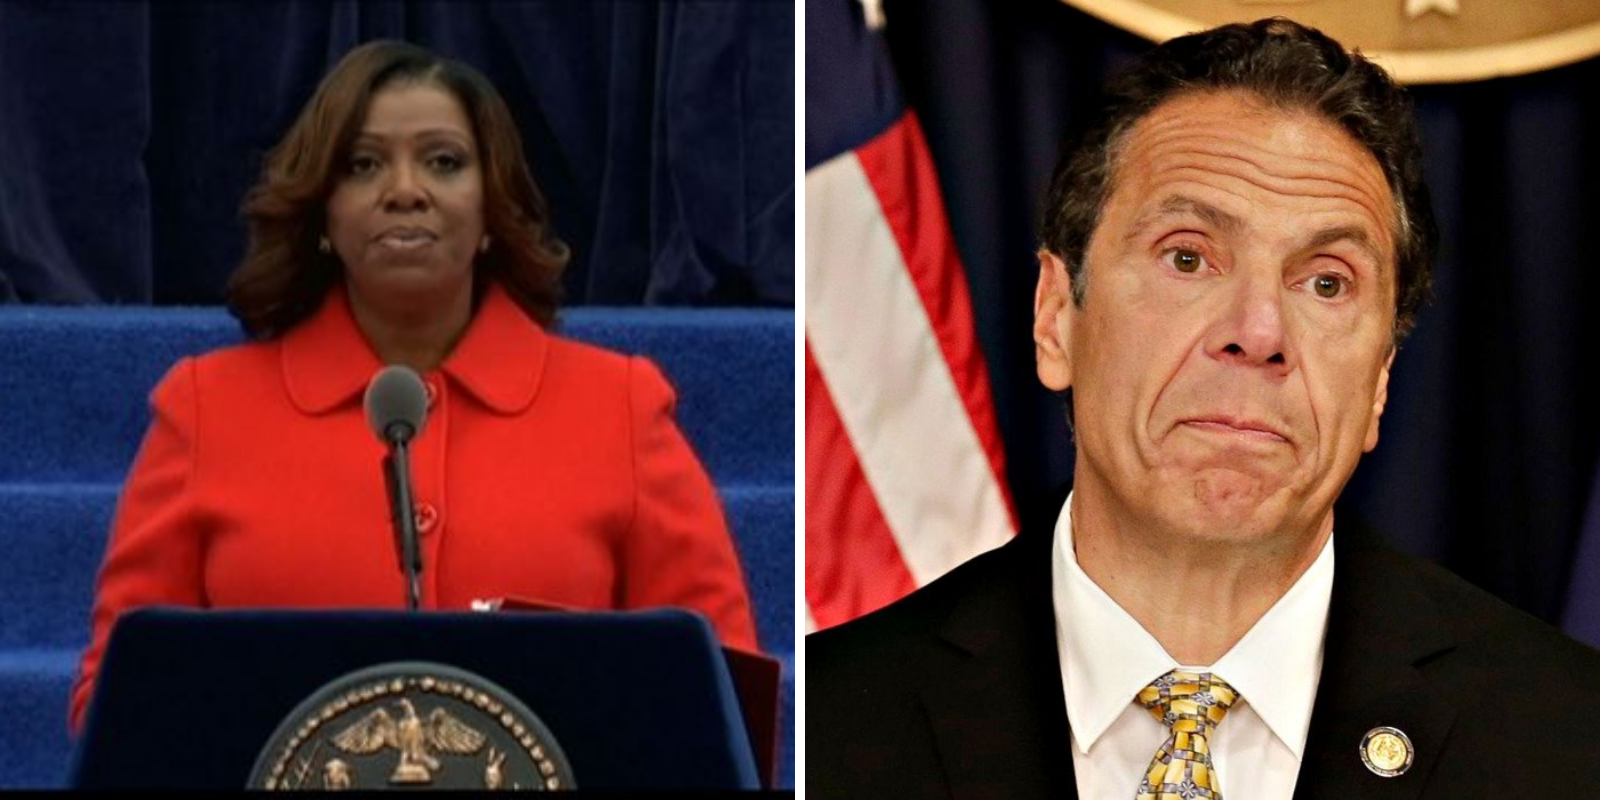 BREAKING: New York AG accuses Gov. Cuomo of underreporting nursing home deaths by up to 50 percent